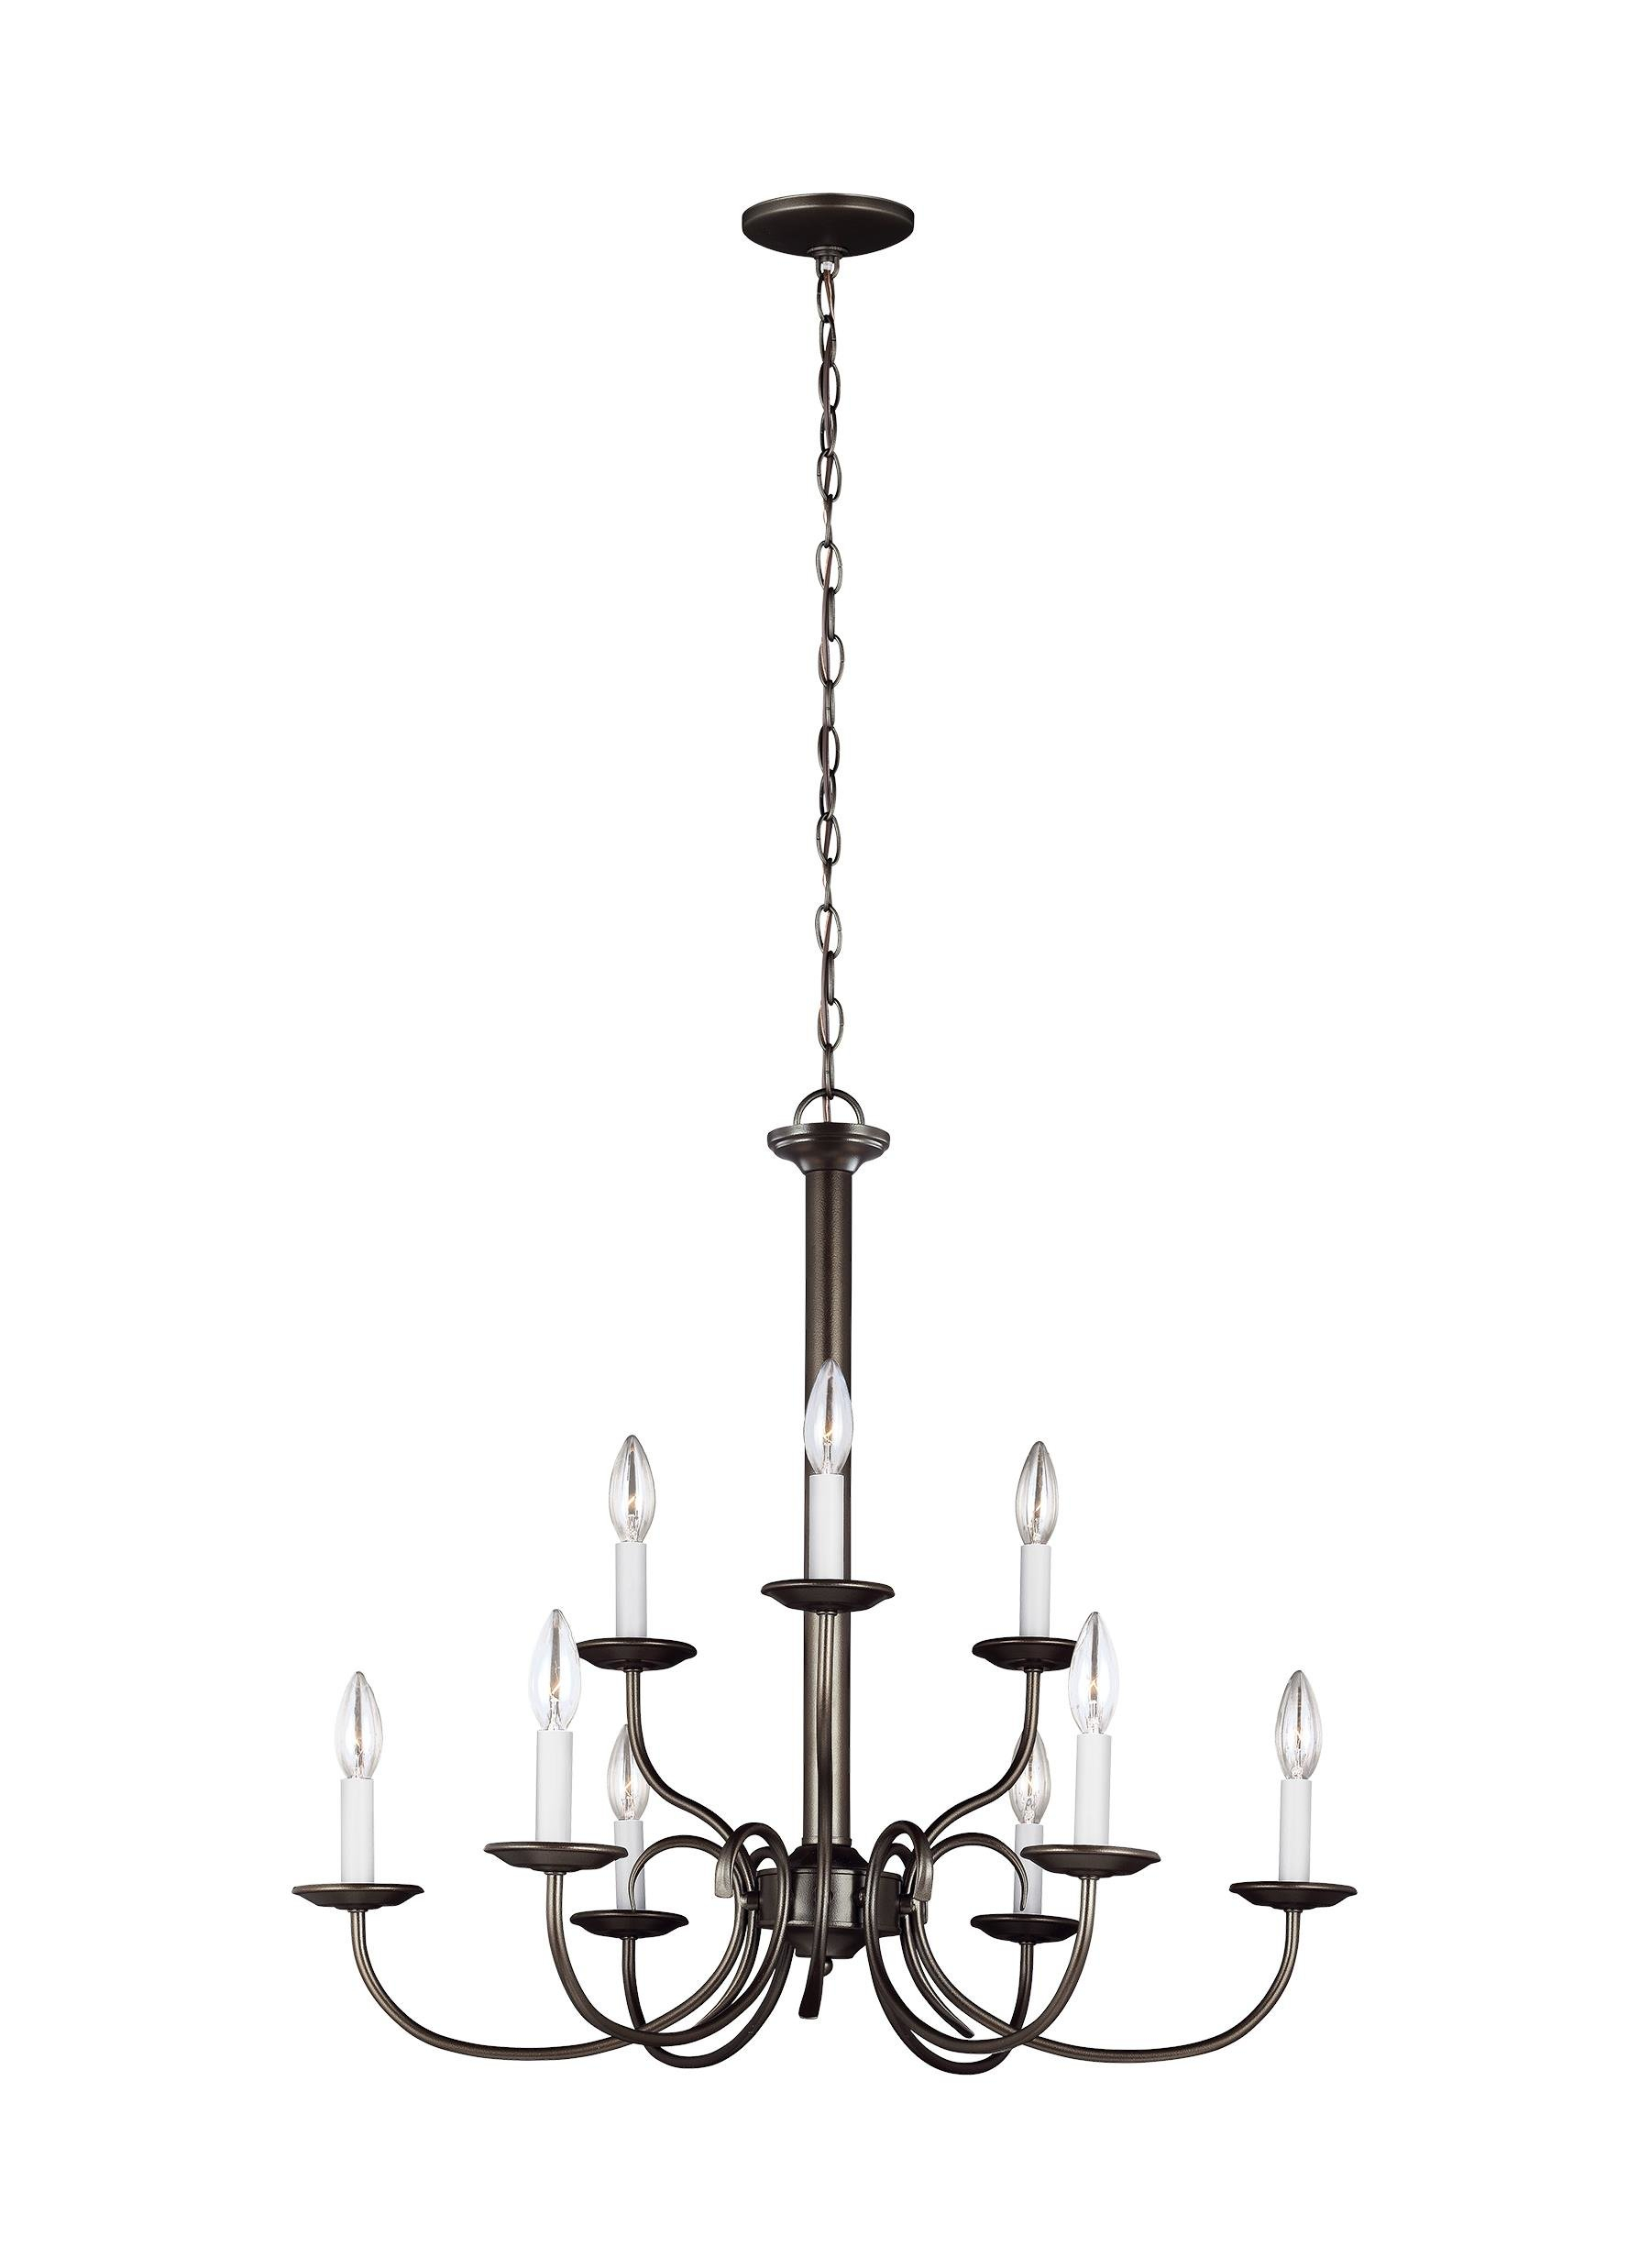 Mcknight 9 Light Chandelier | Wayfair within Mcknight 9-Light Chandeliers (Image 21 of 30)